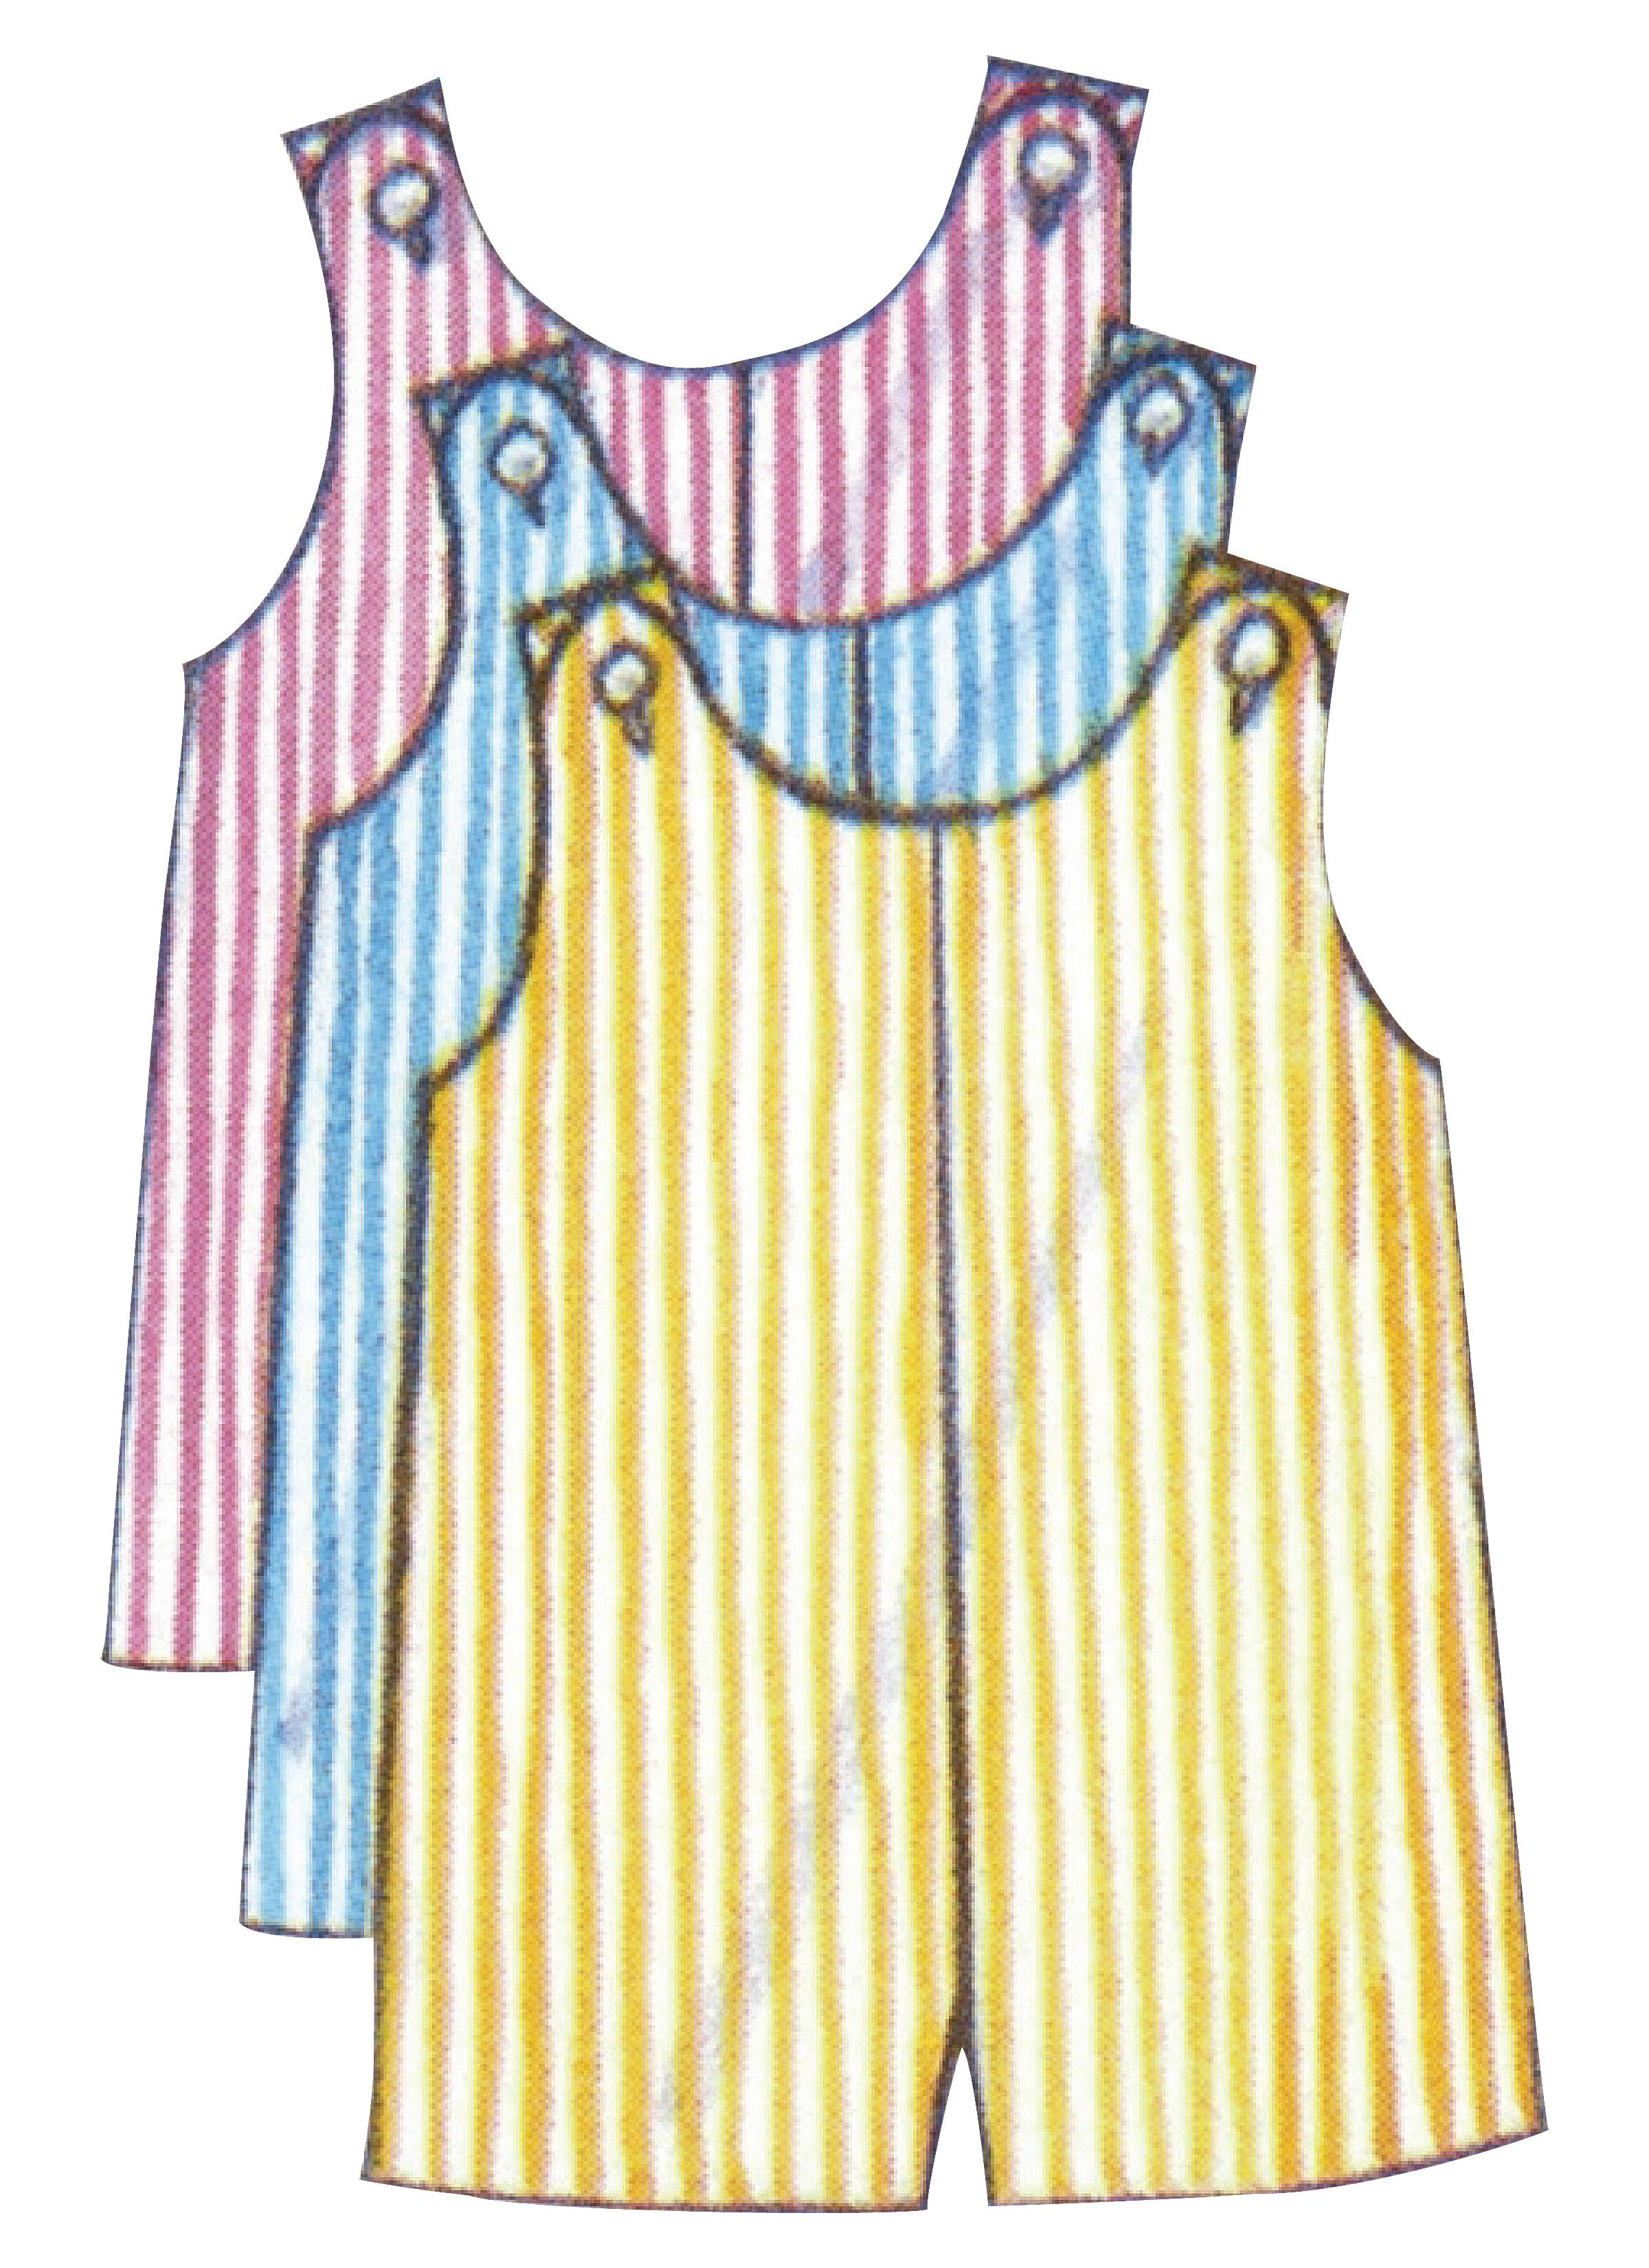 Butterick B5625 Infants' Romper, Pinafore, Panties and Hat